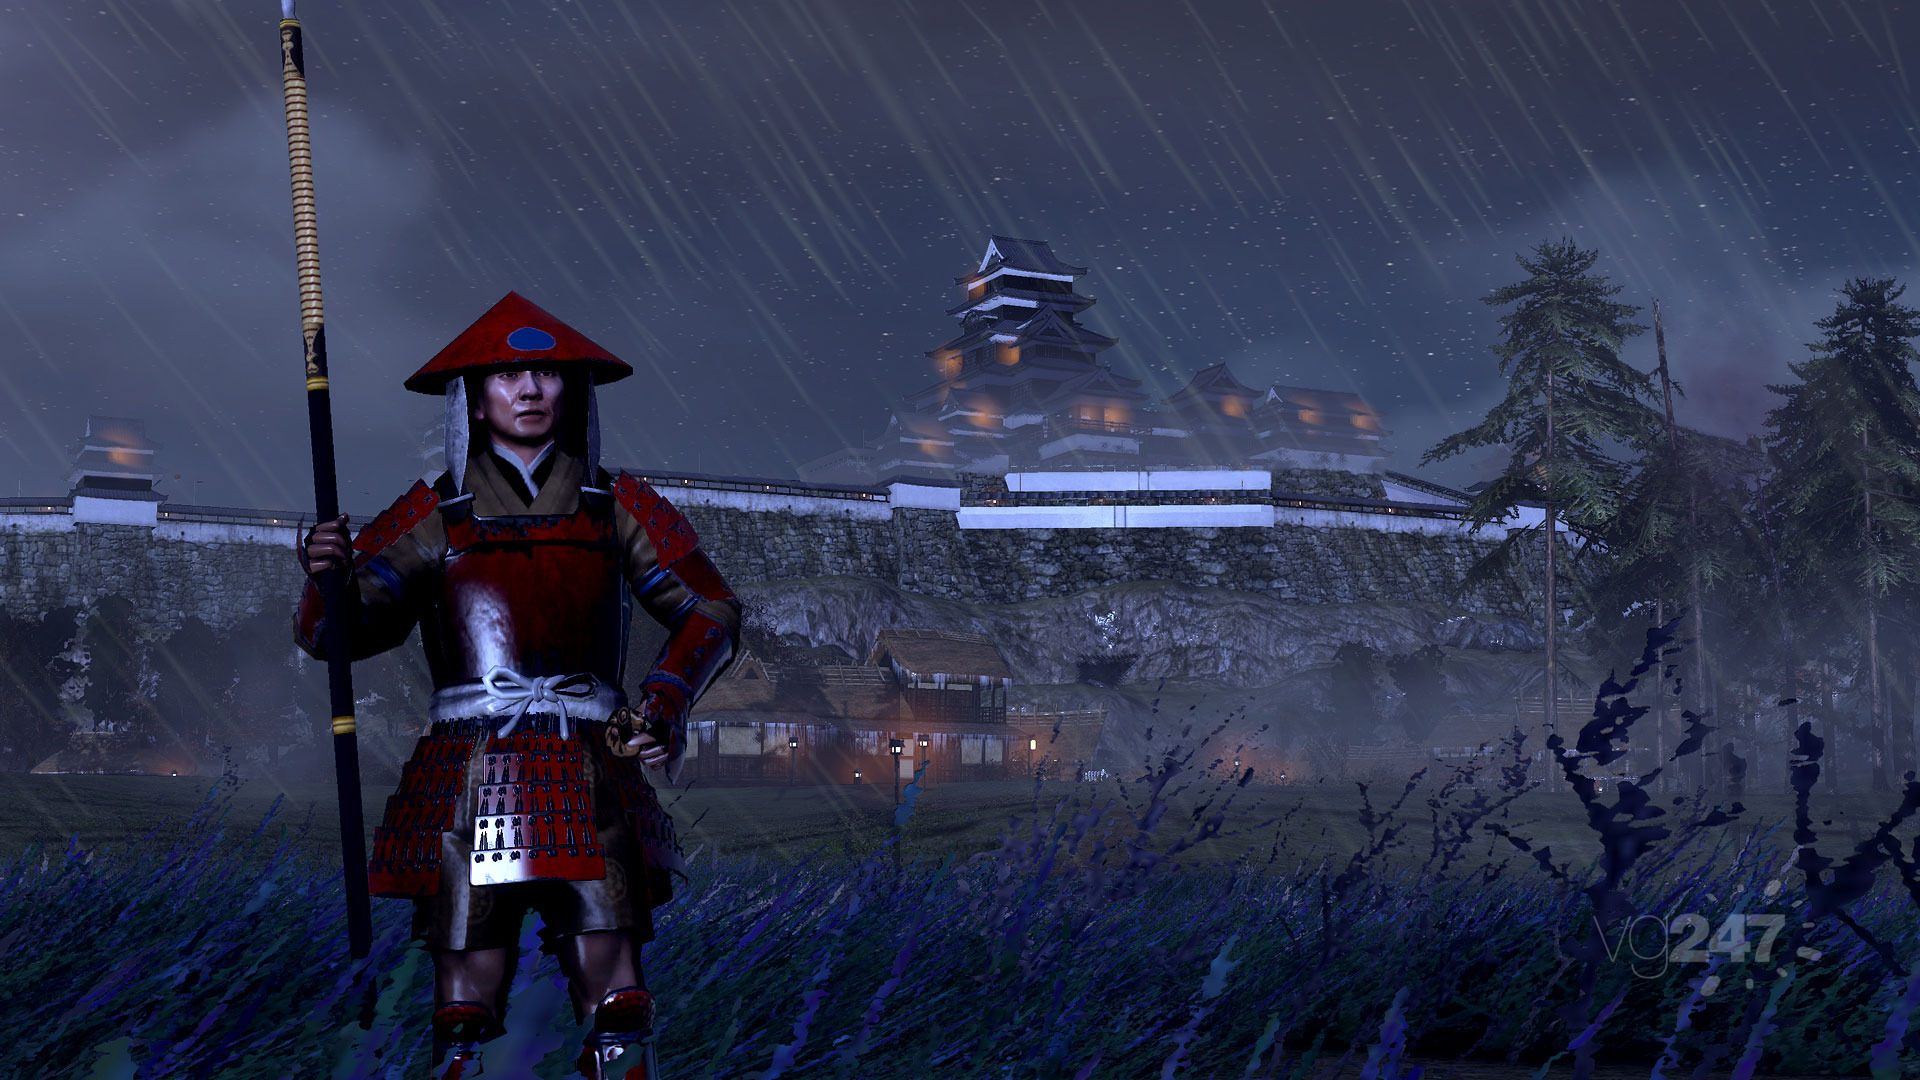 Shogun 2 Fall Of The Samurai Wallpaper New Shogun 2 Total War Screens Lightning Fighting